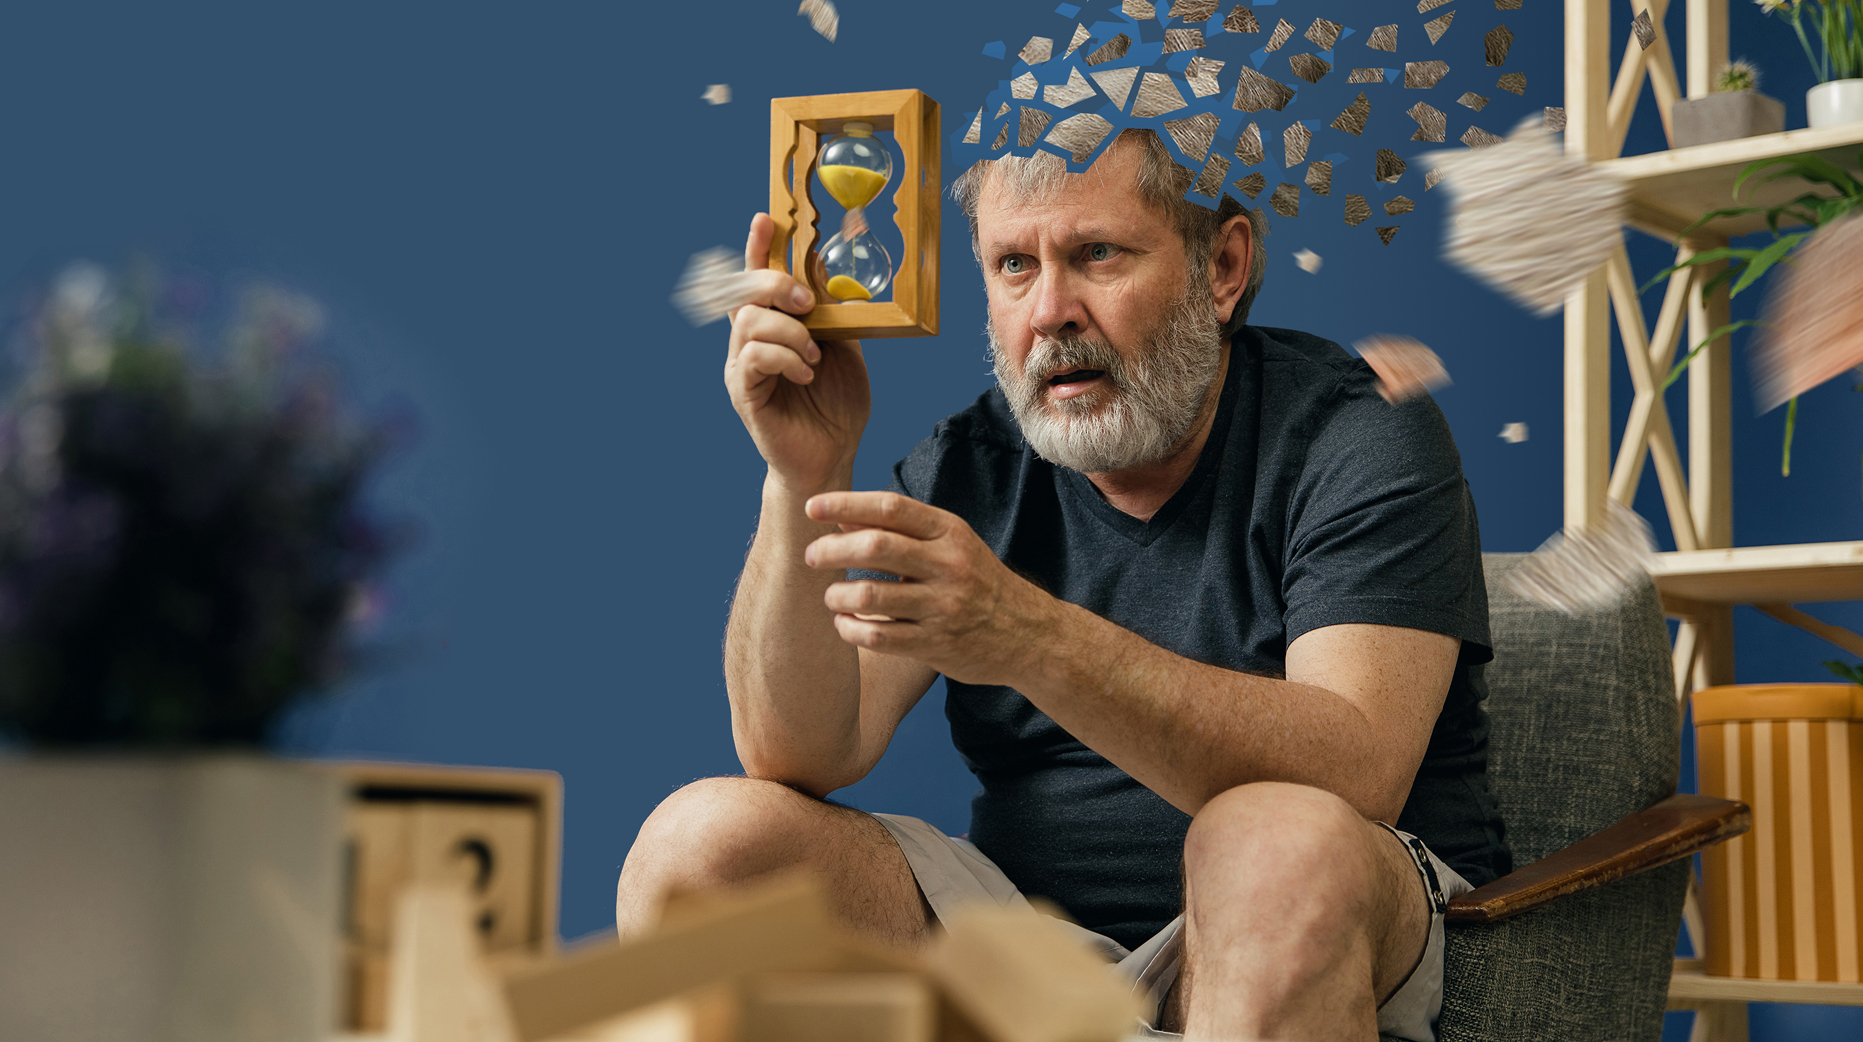 Using-The-Skills-Of-Neuroleadership-In-Caring-For-A-Loved-One-With-Alzheimers